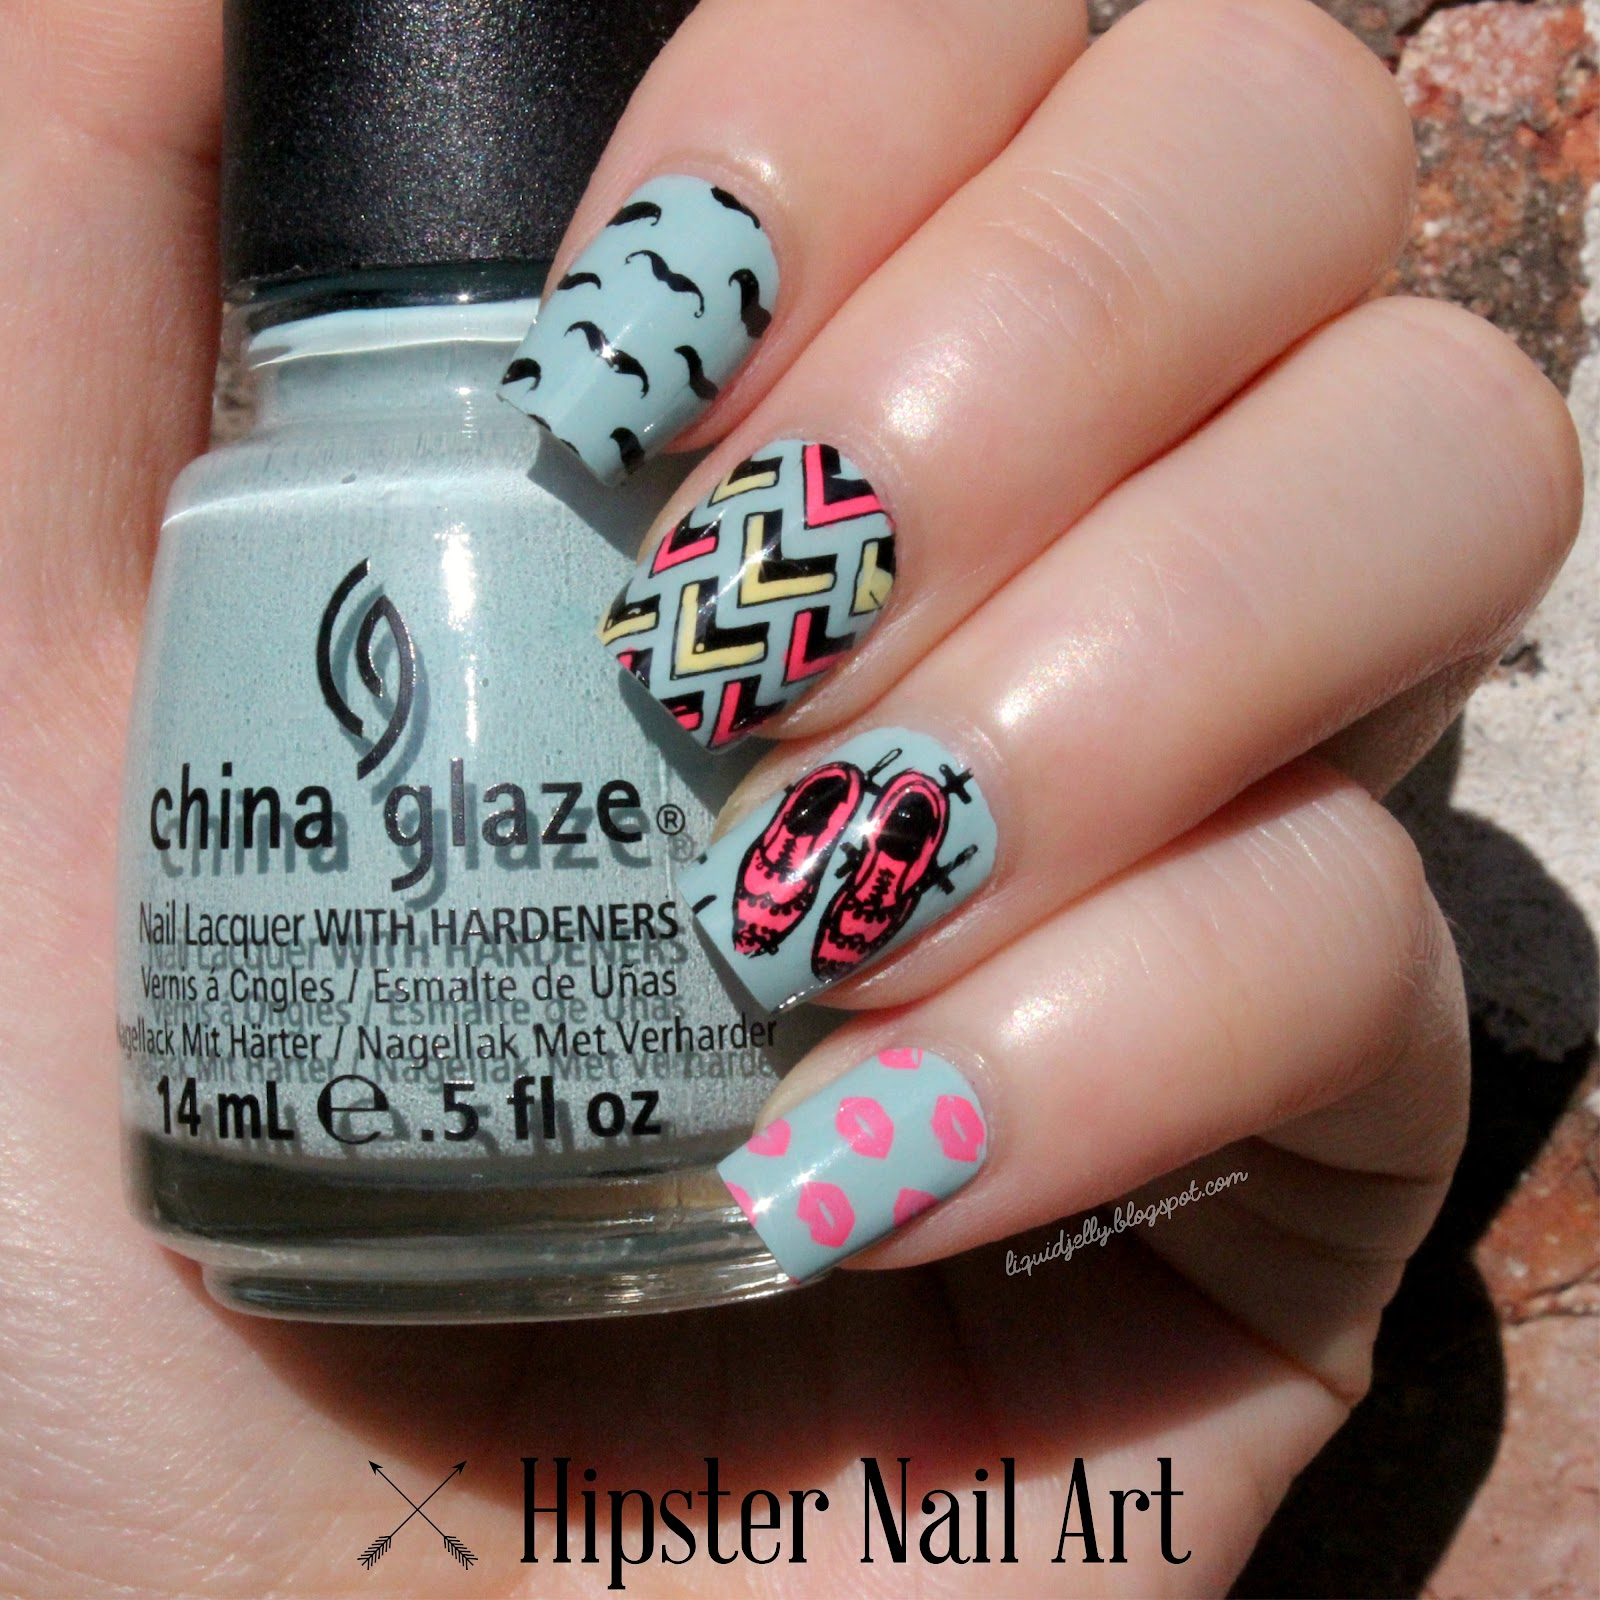 Liquid jelly nail art lets be hipster with moyou london nail art lets be hipster with moyou london hipster stamping plates prinsesfo Images